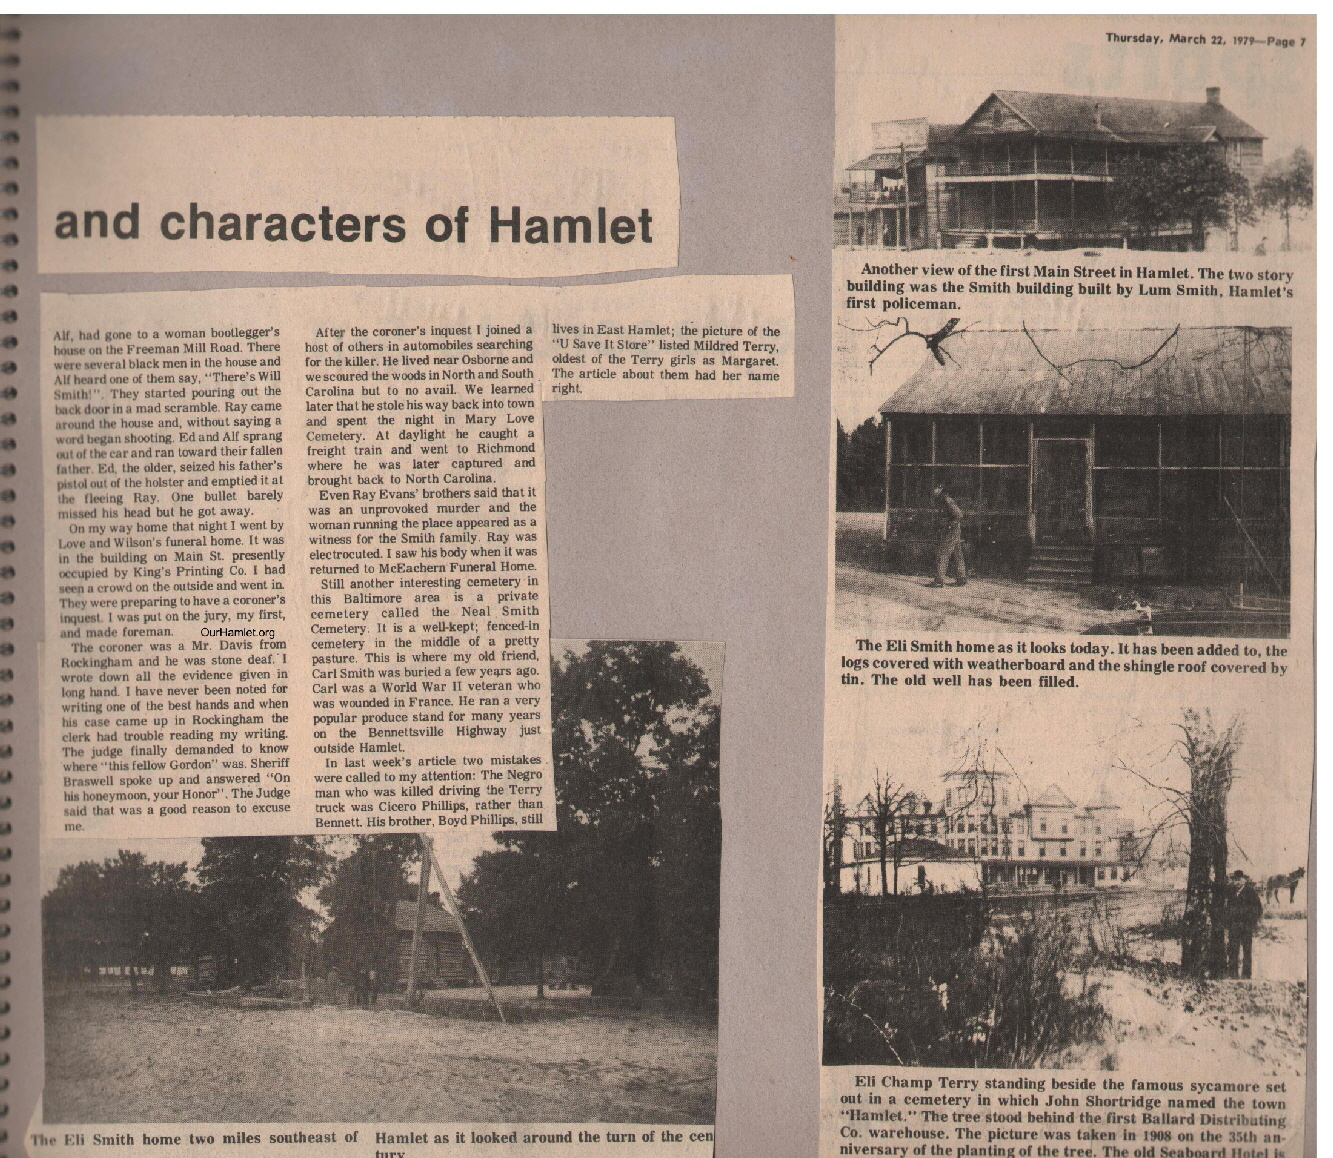 The Squire - Interesting Facts and Characters of Hamlet b OH